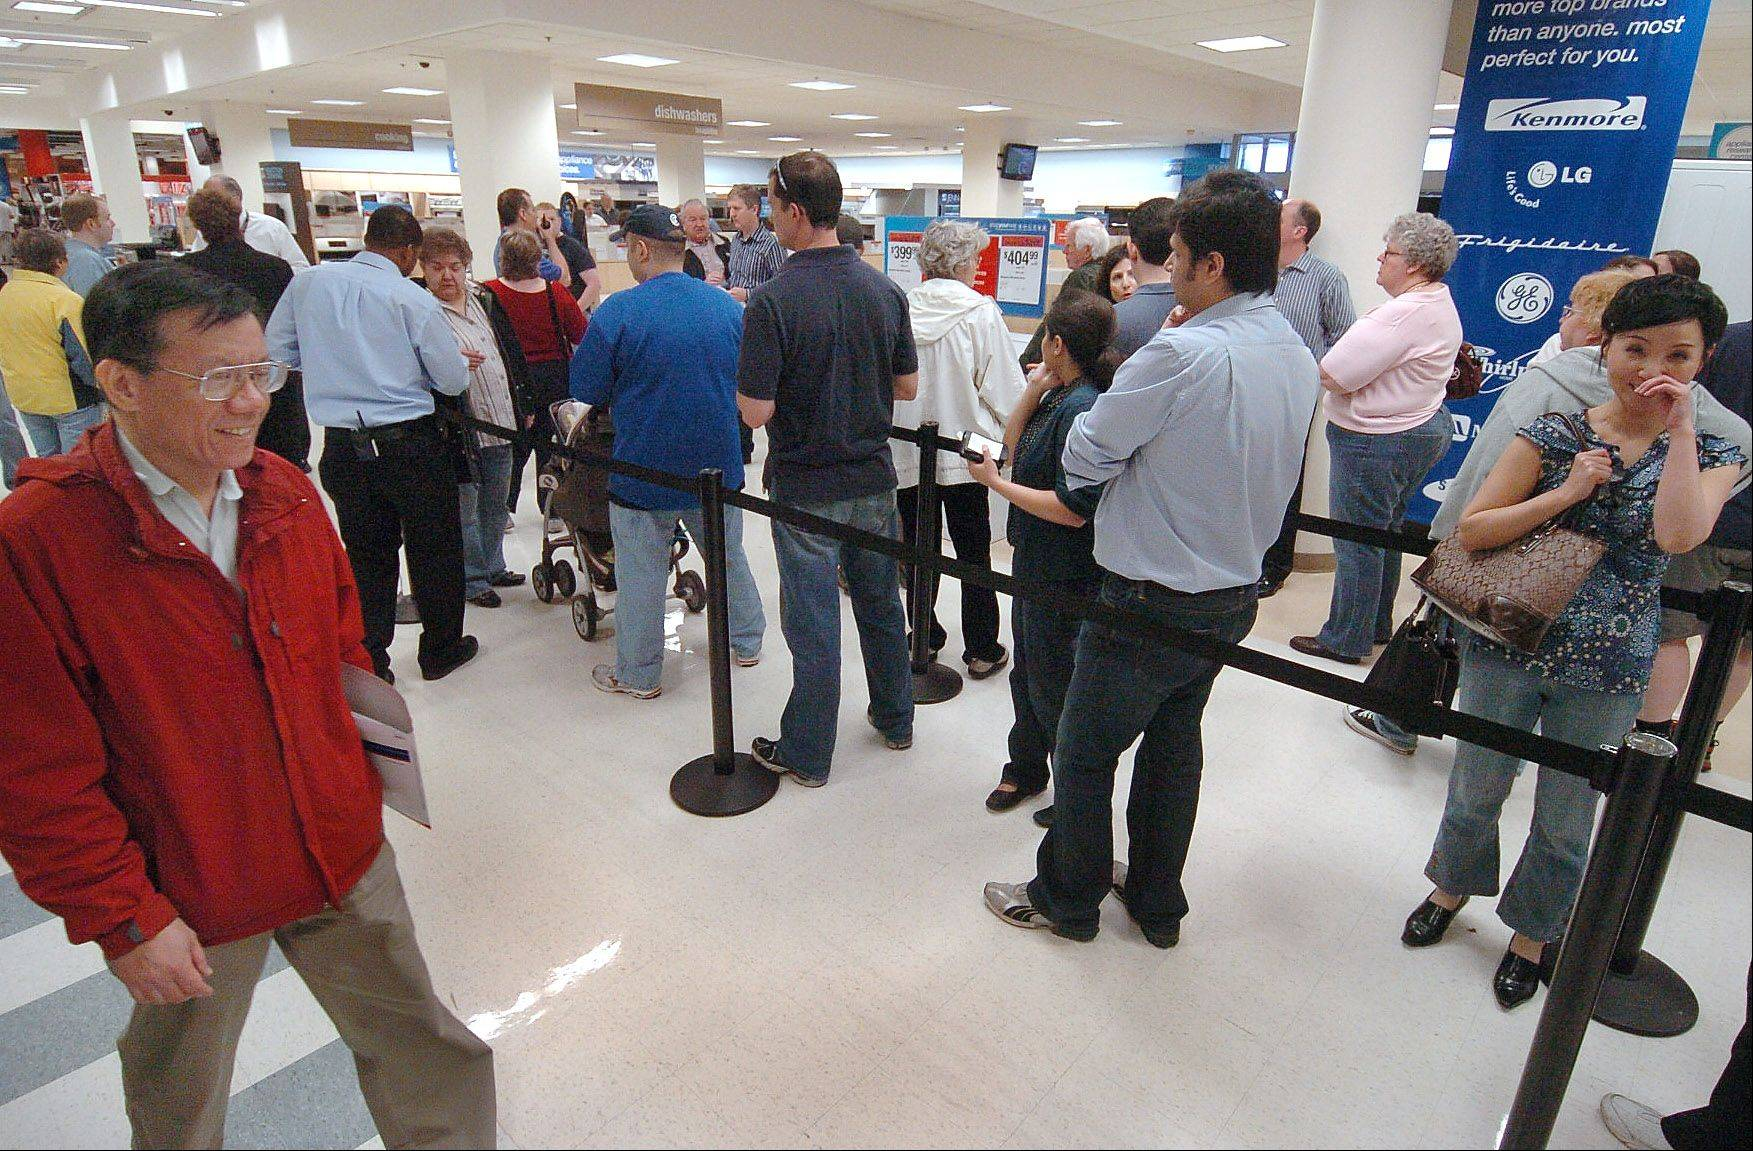 People line up to buy appliances at the Sears at Woodfield.